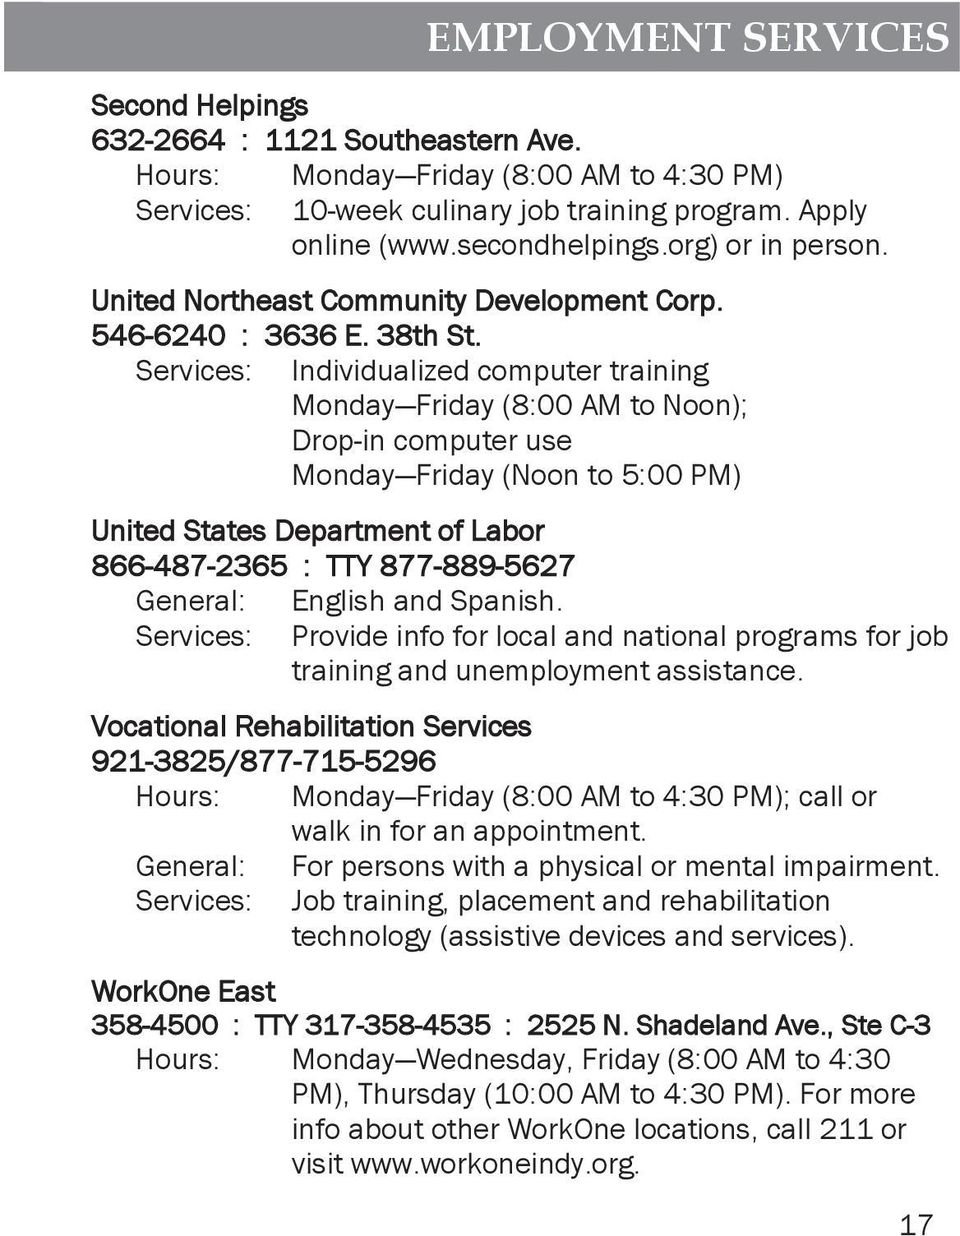 Services: Individualized computer training Monday Friday (8:00 AM to Noon); Drop-in computer use Monday Friday (Noon to 5:00 PM) United States Department of Labor 866-487-2365 : TTY 877-889-5627